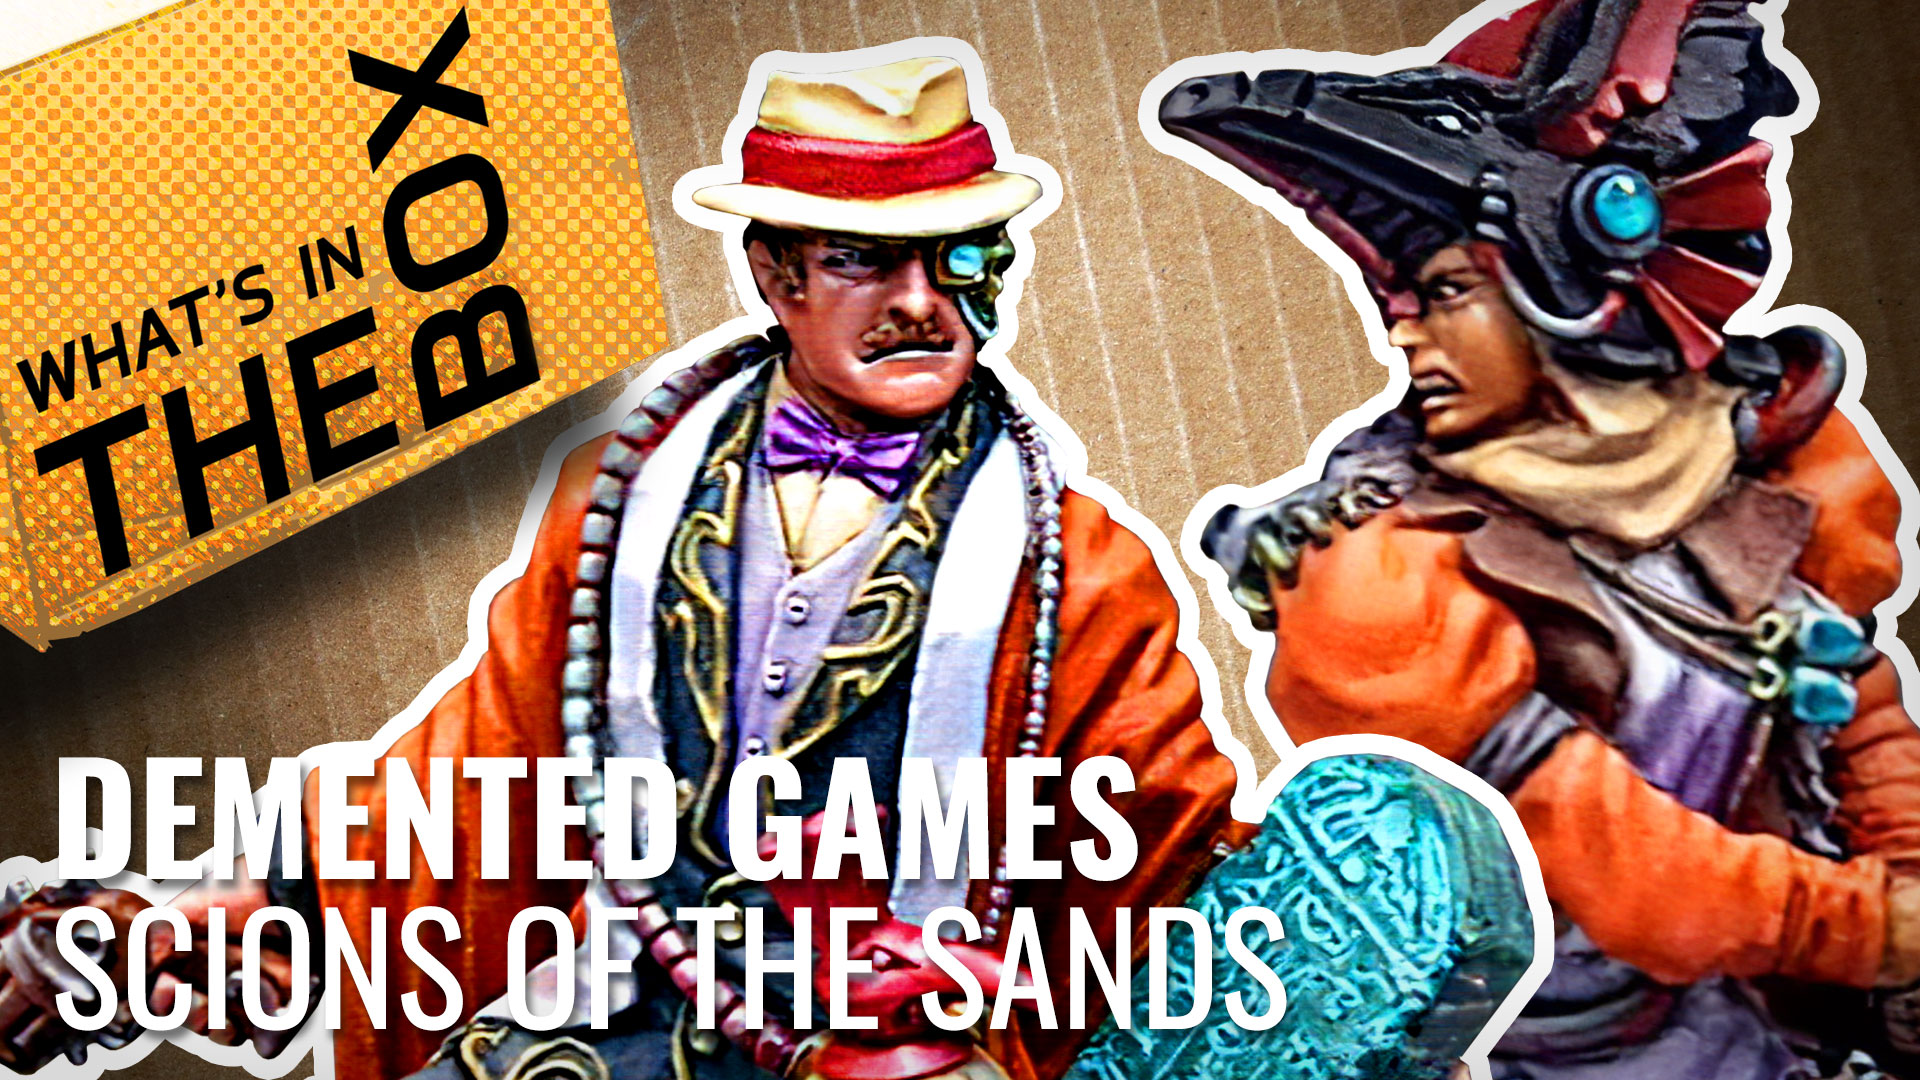 Demented-Games-scions-of-the-sands-coverimage